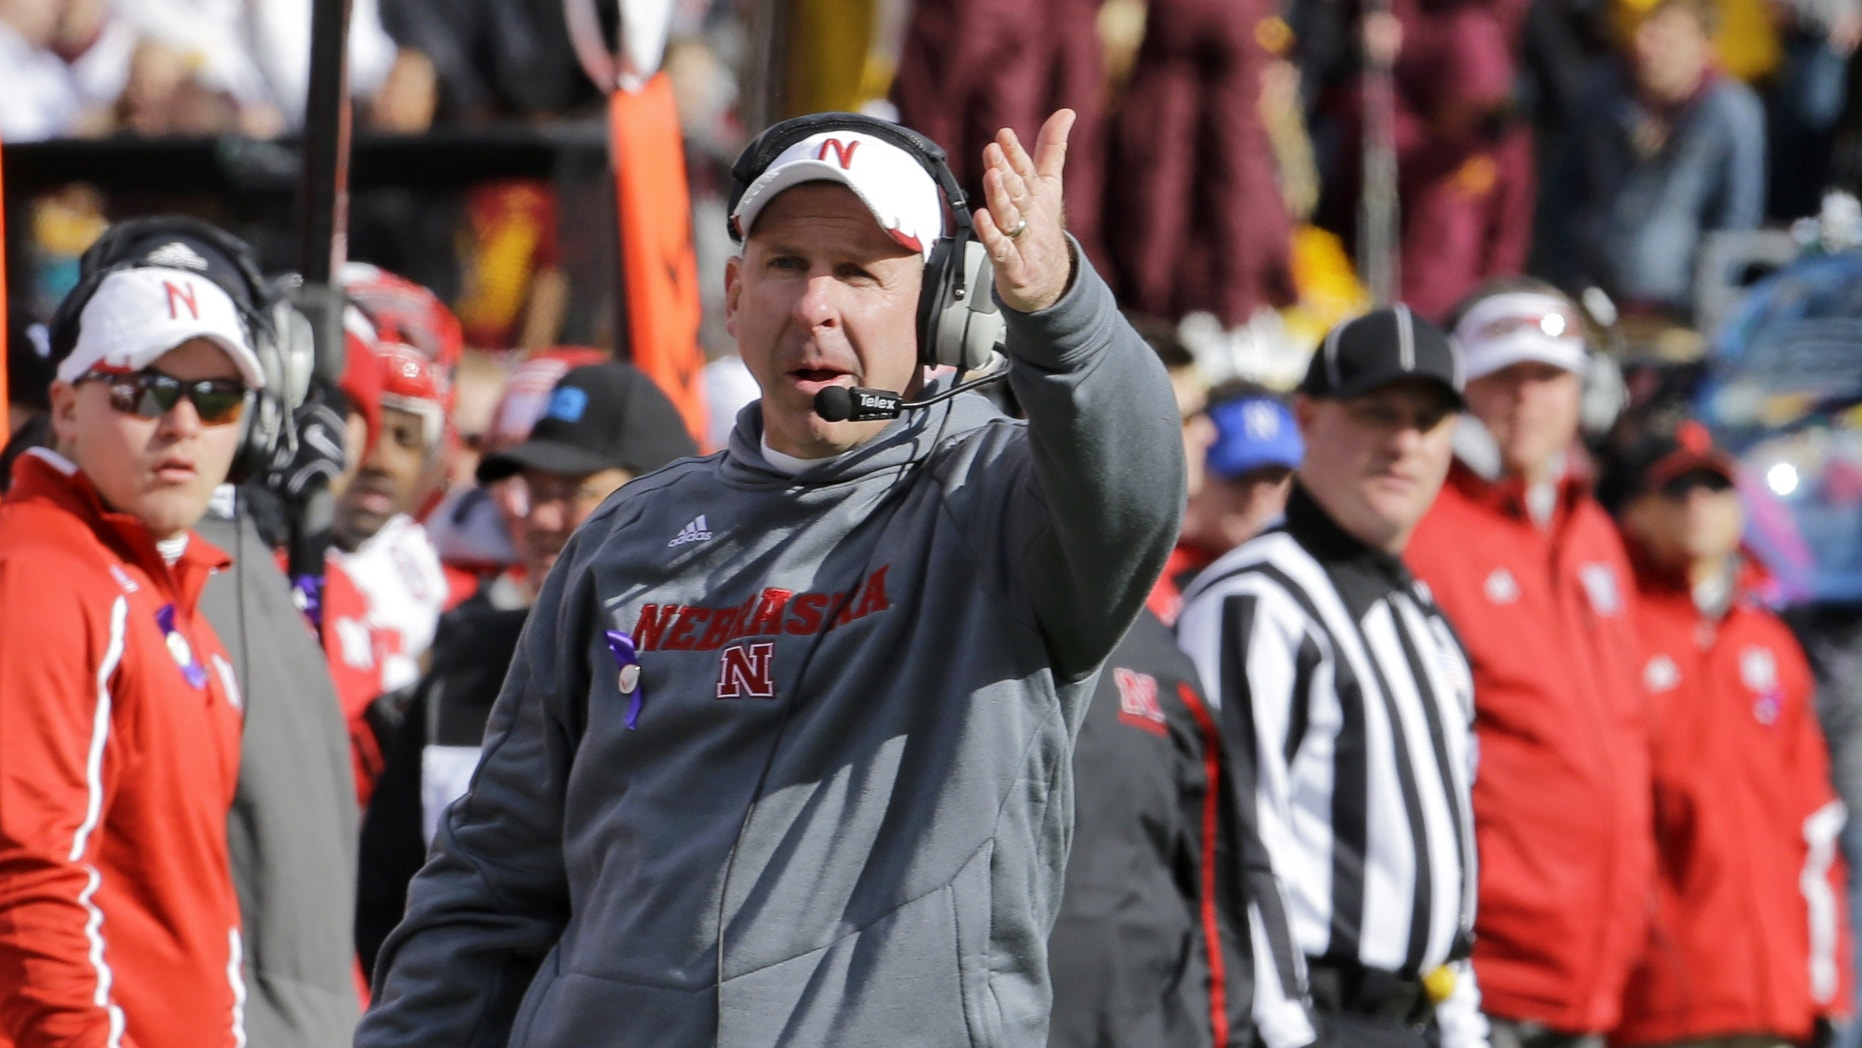 Nebraska head coach Bo Pelini disagrees with a call during the fourth quarter of an NCAA college football game against Minnesota in Minneapolis Saturday, Oct. 26, 2013. Minnesota beat Nebraska 34-23. (AP Photo/Ann Heisenfelt)